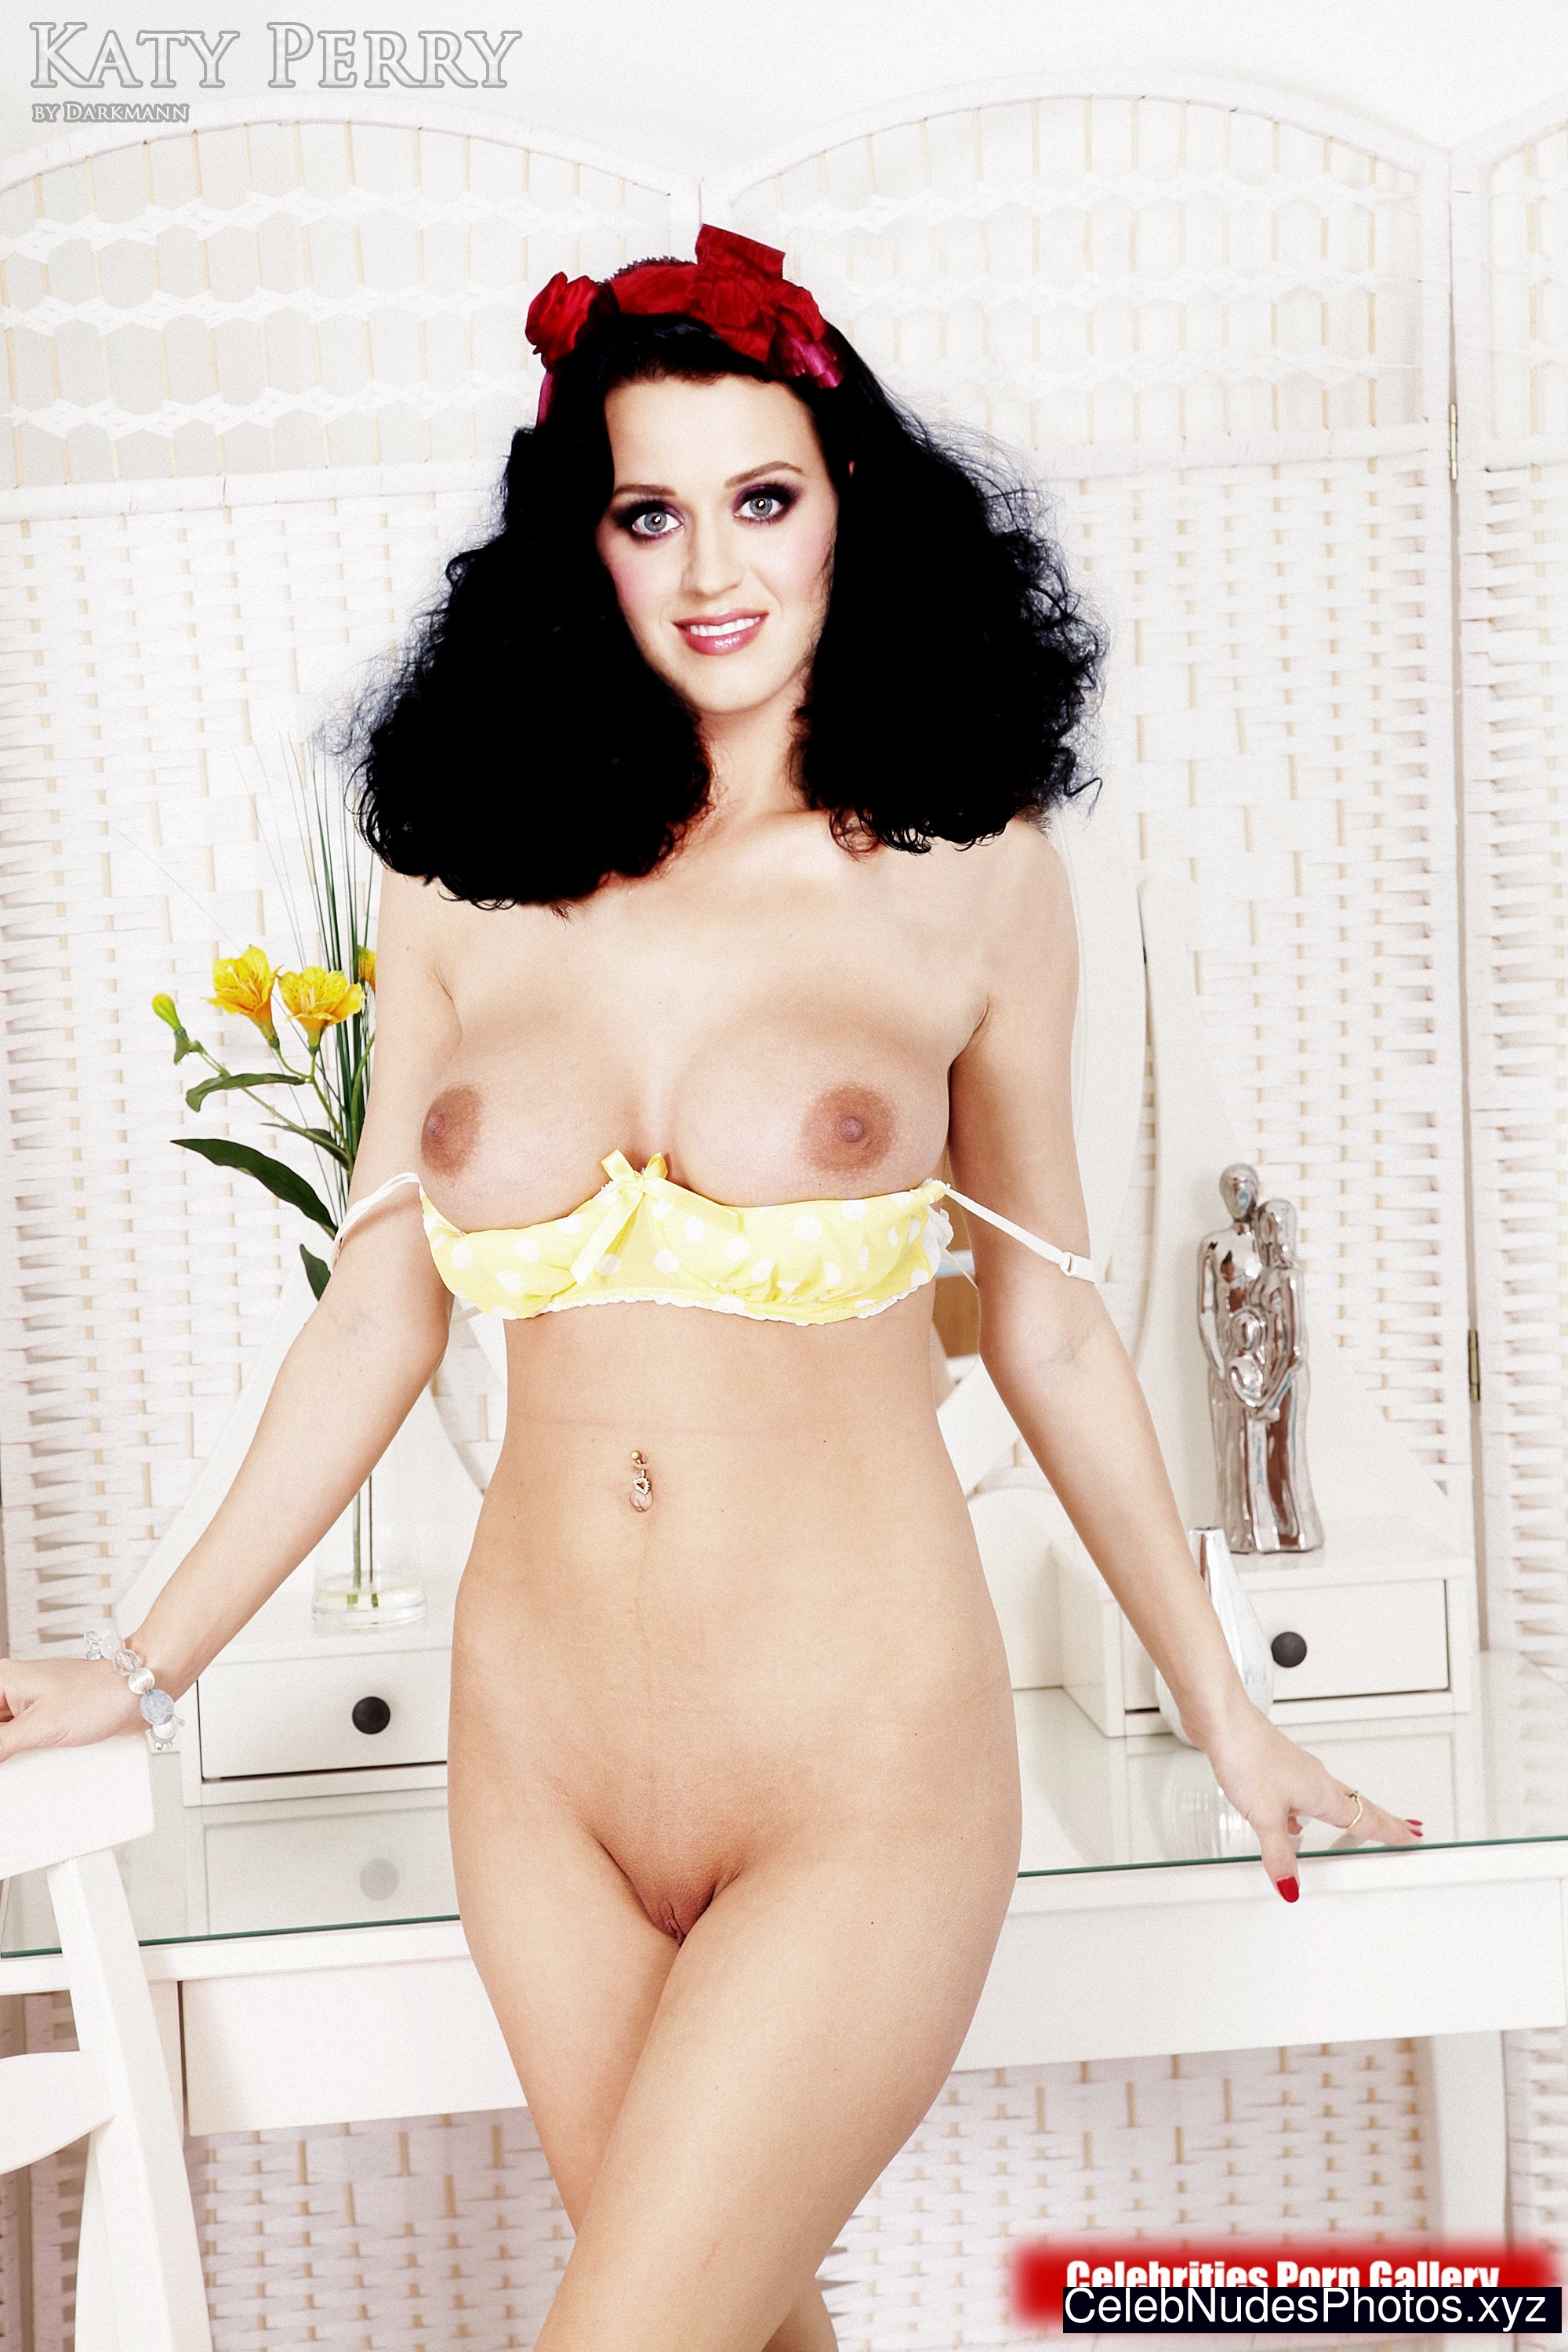 Katy Perry Free nude Celebrity sexy 8